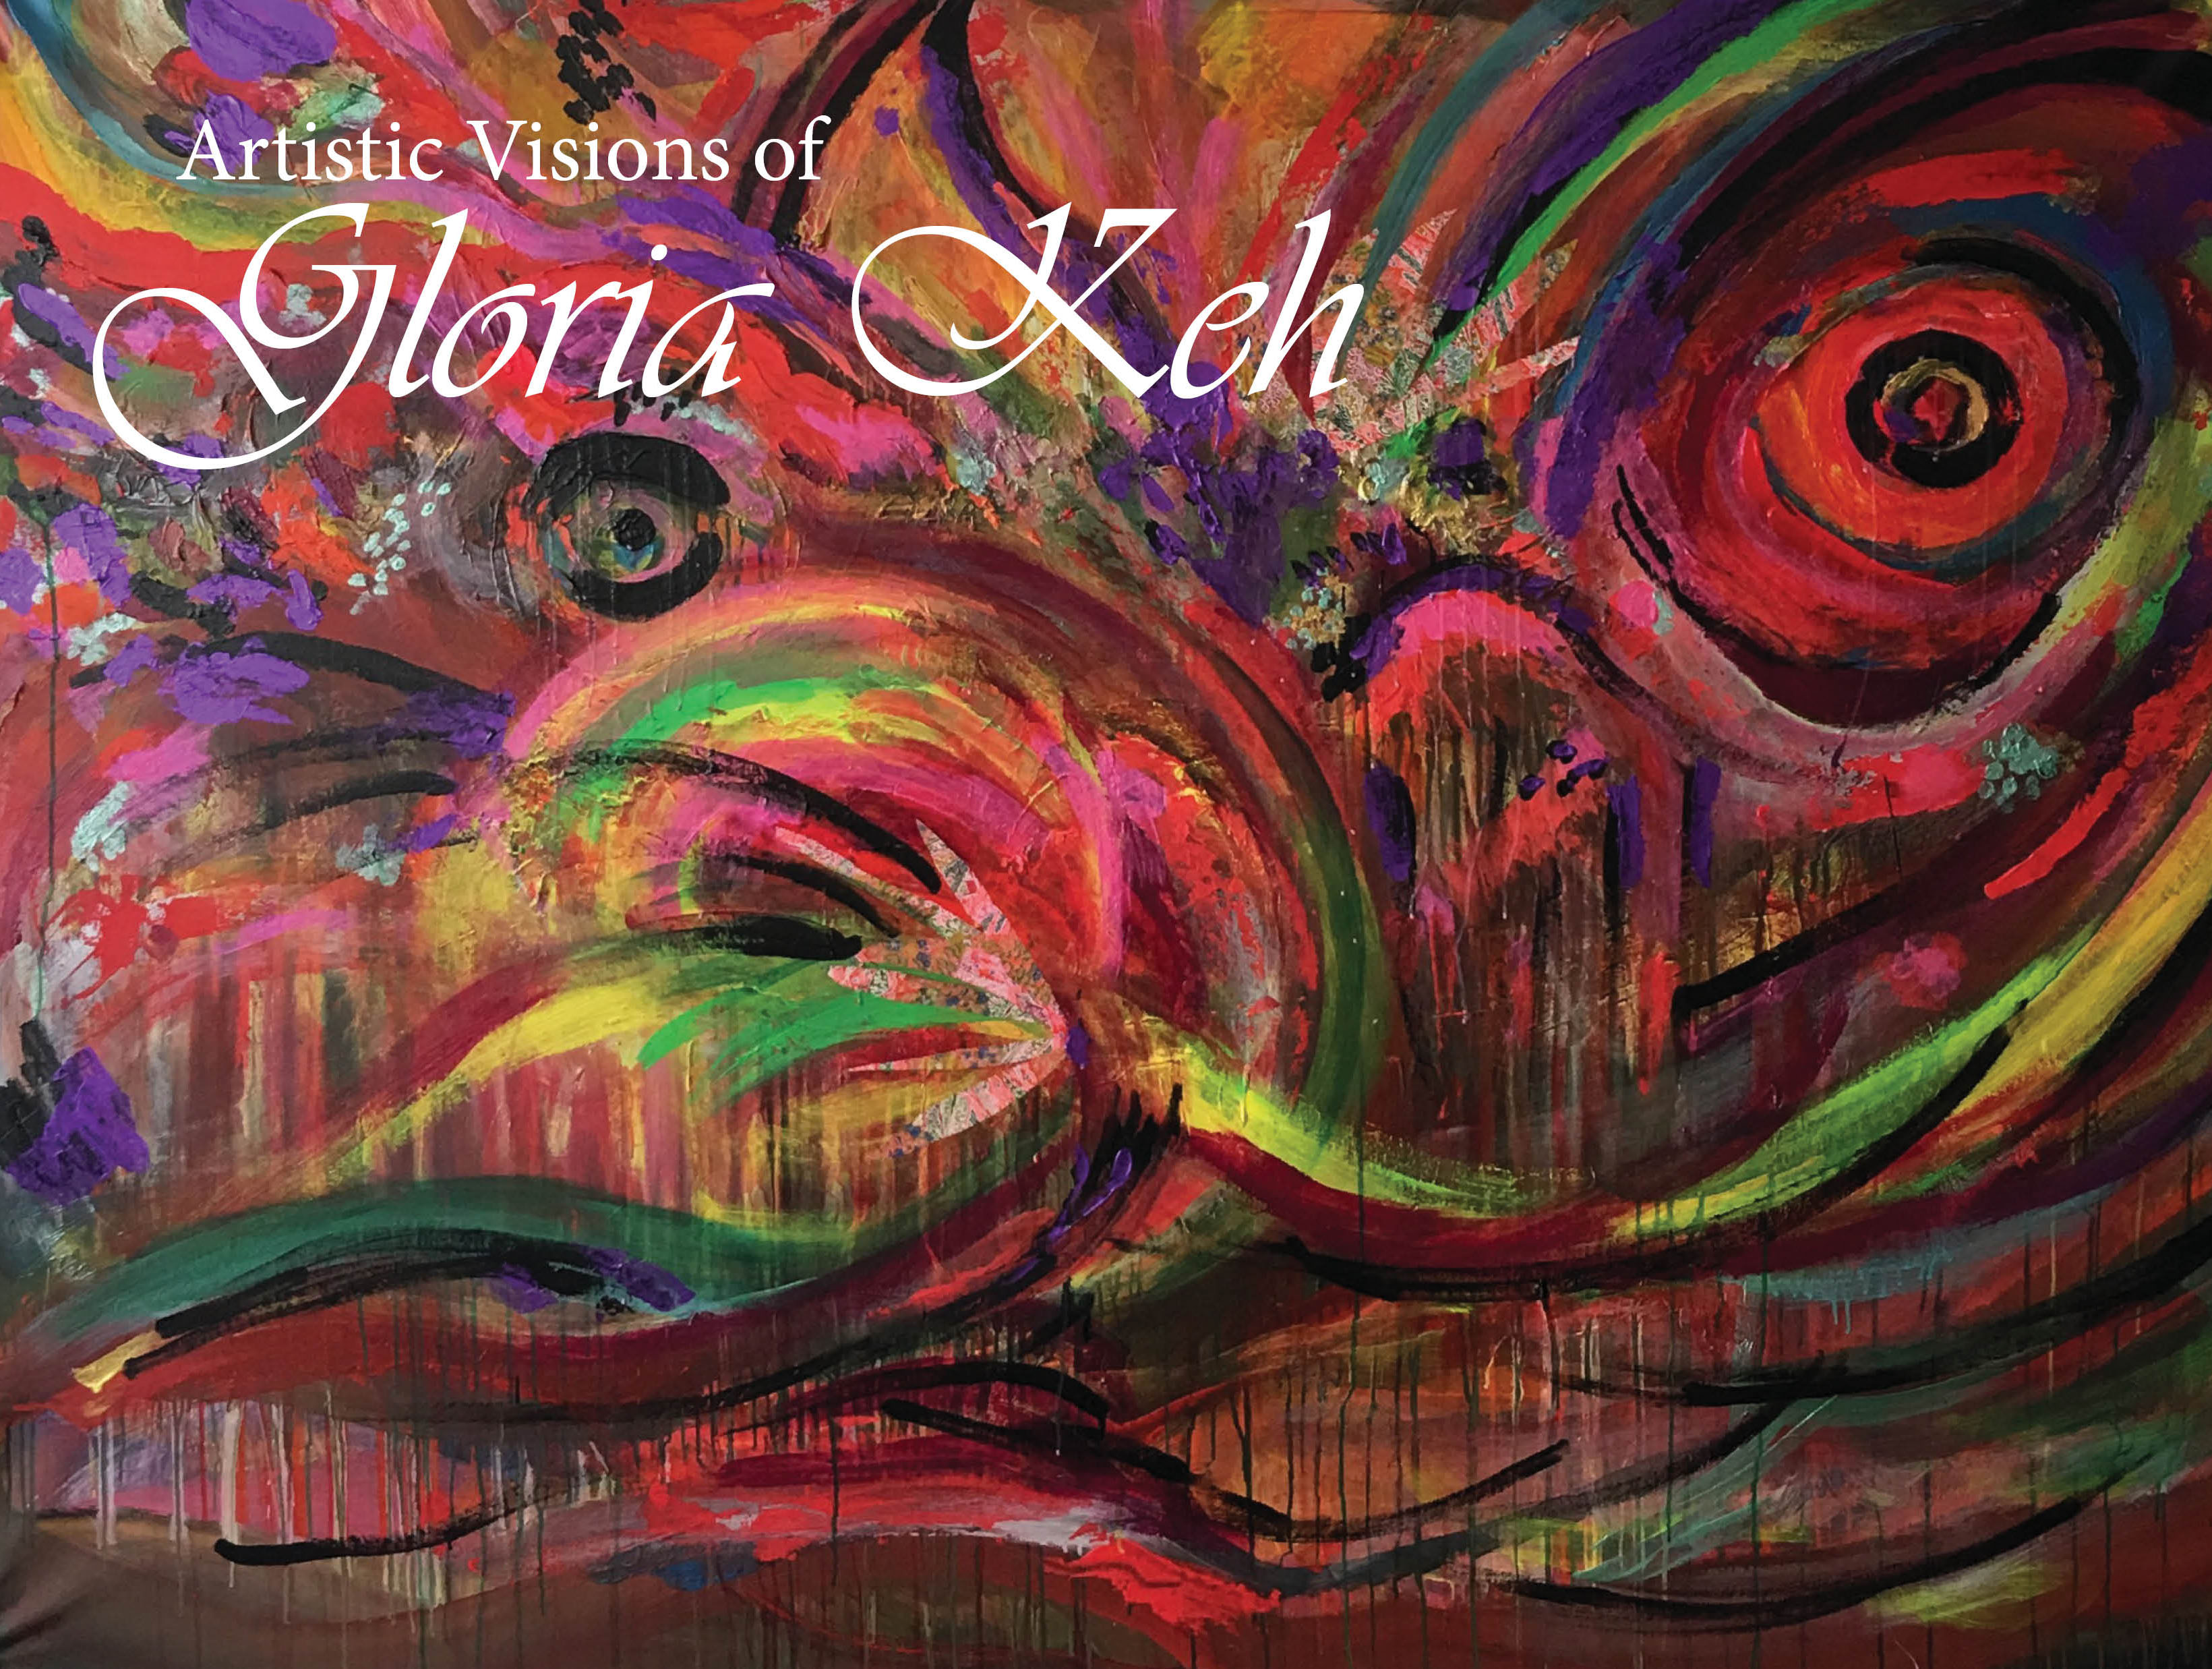 Artistic Visions of Gloria Keh